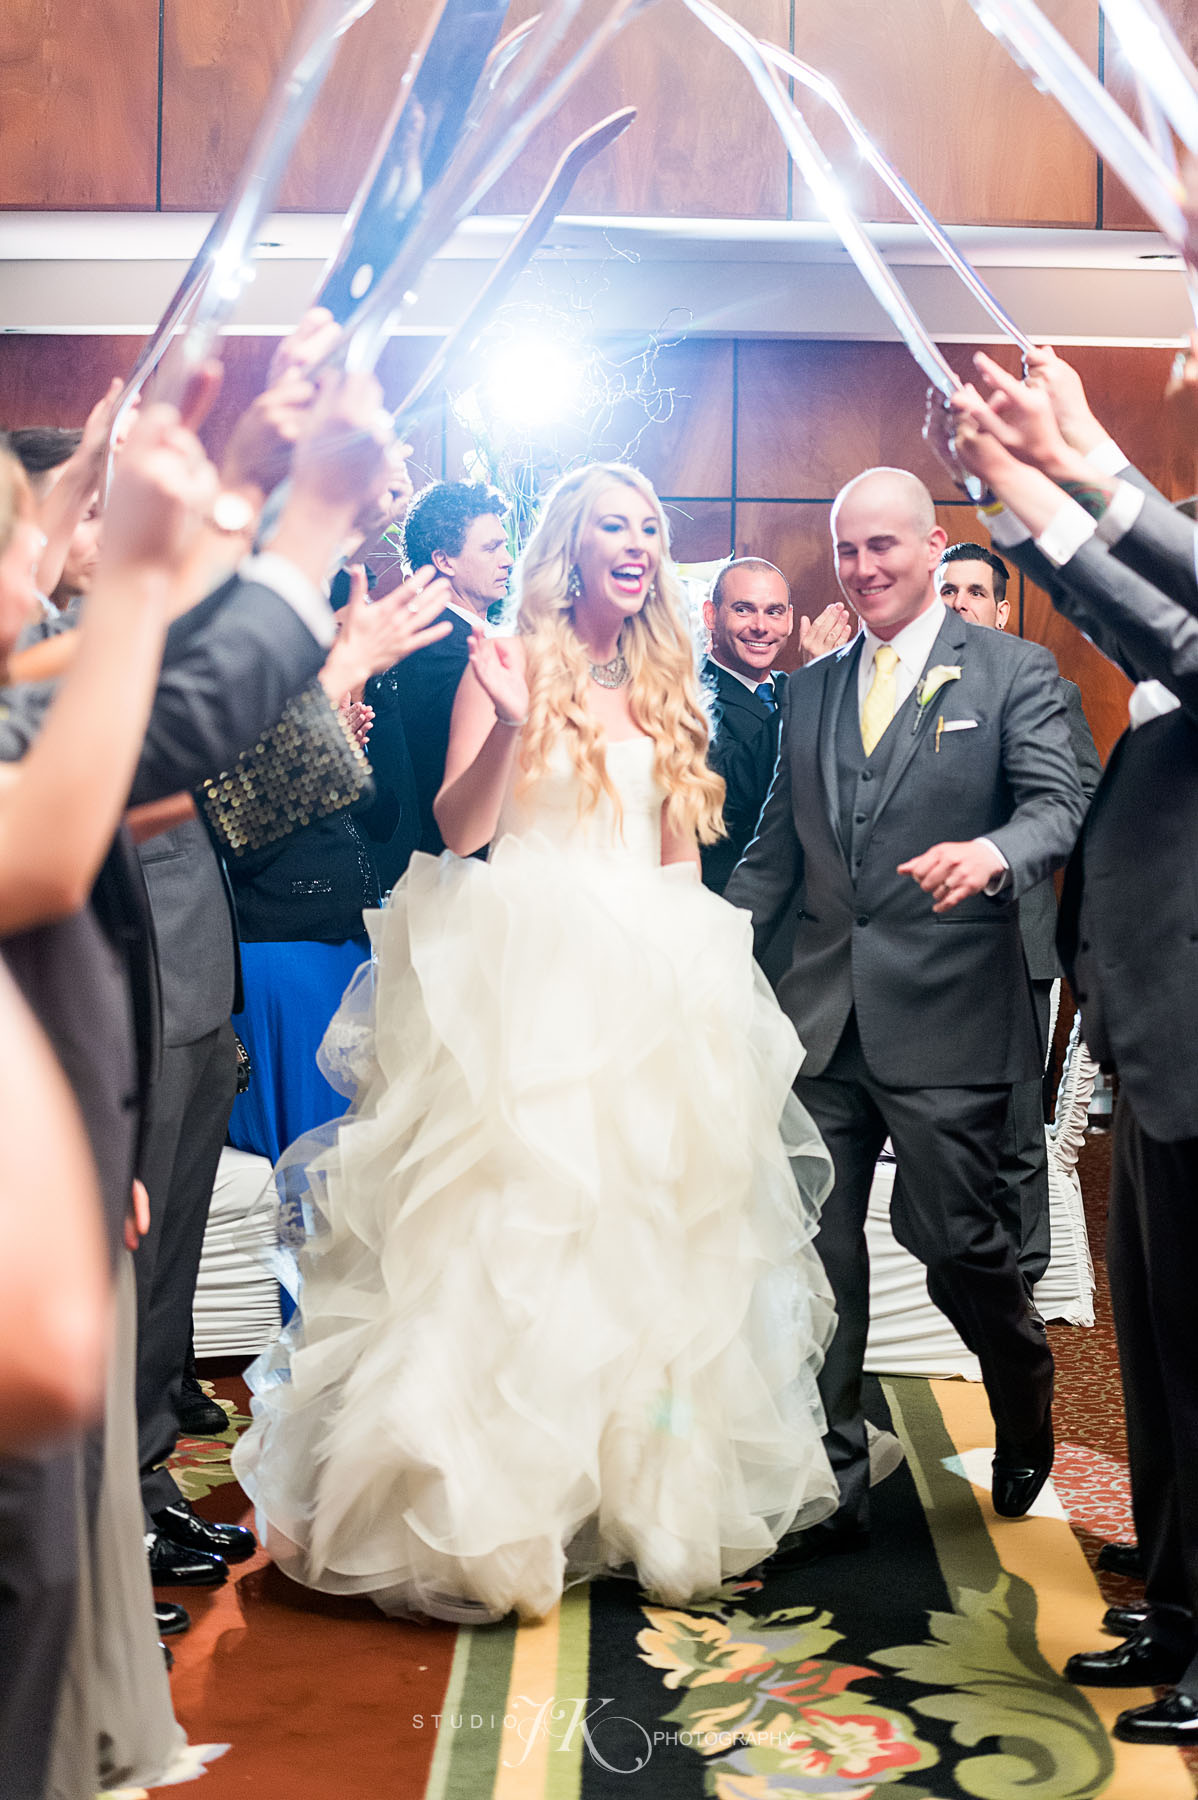 Cloud 9 Wedding At The Brown Palace Hotel